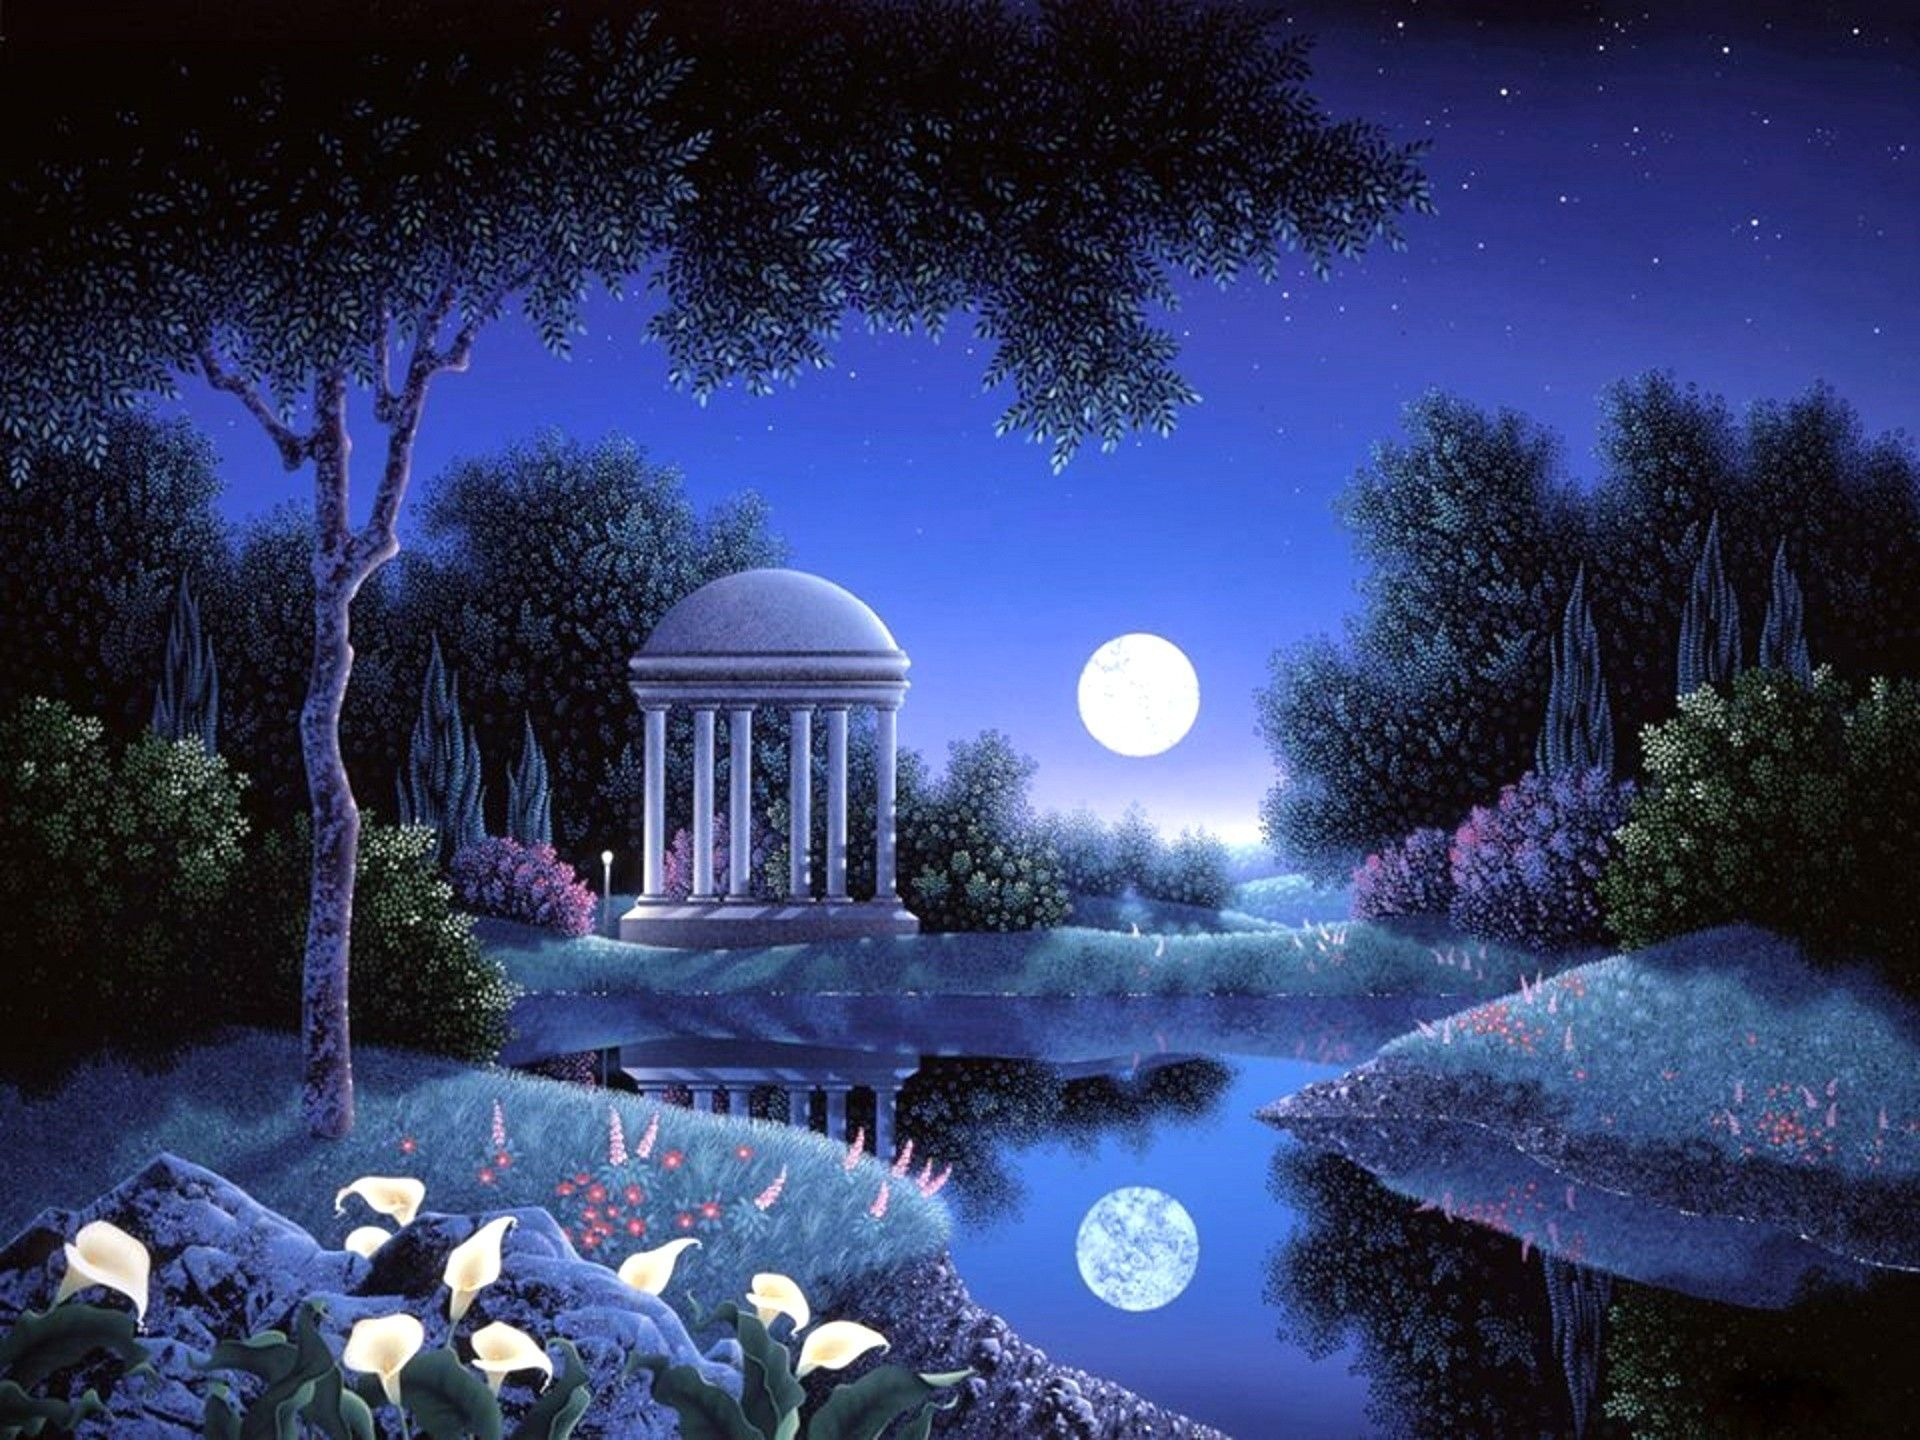 Cute Scenery Images Google Search Night Scenery Night Scene Painting Sky Landscape